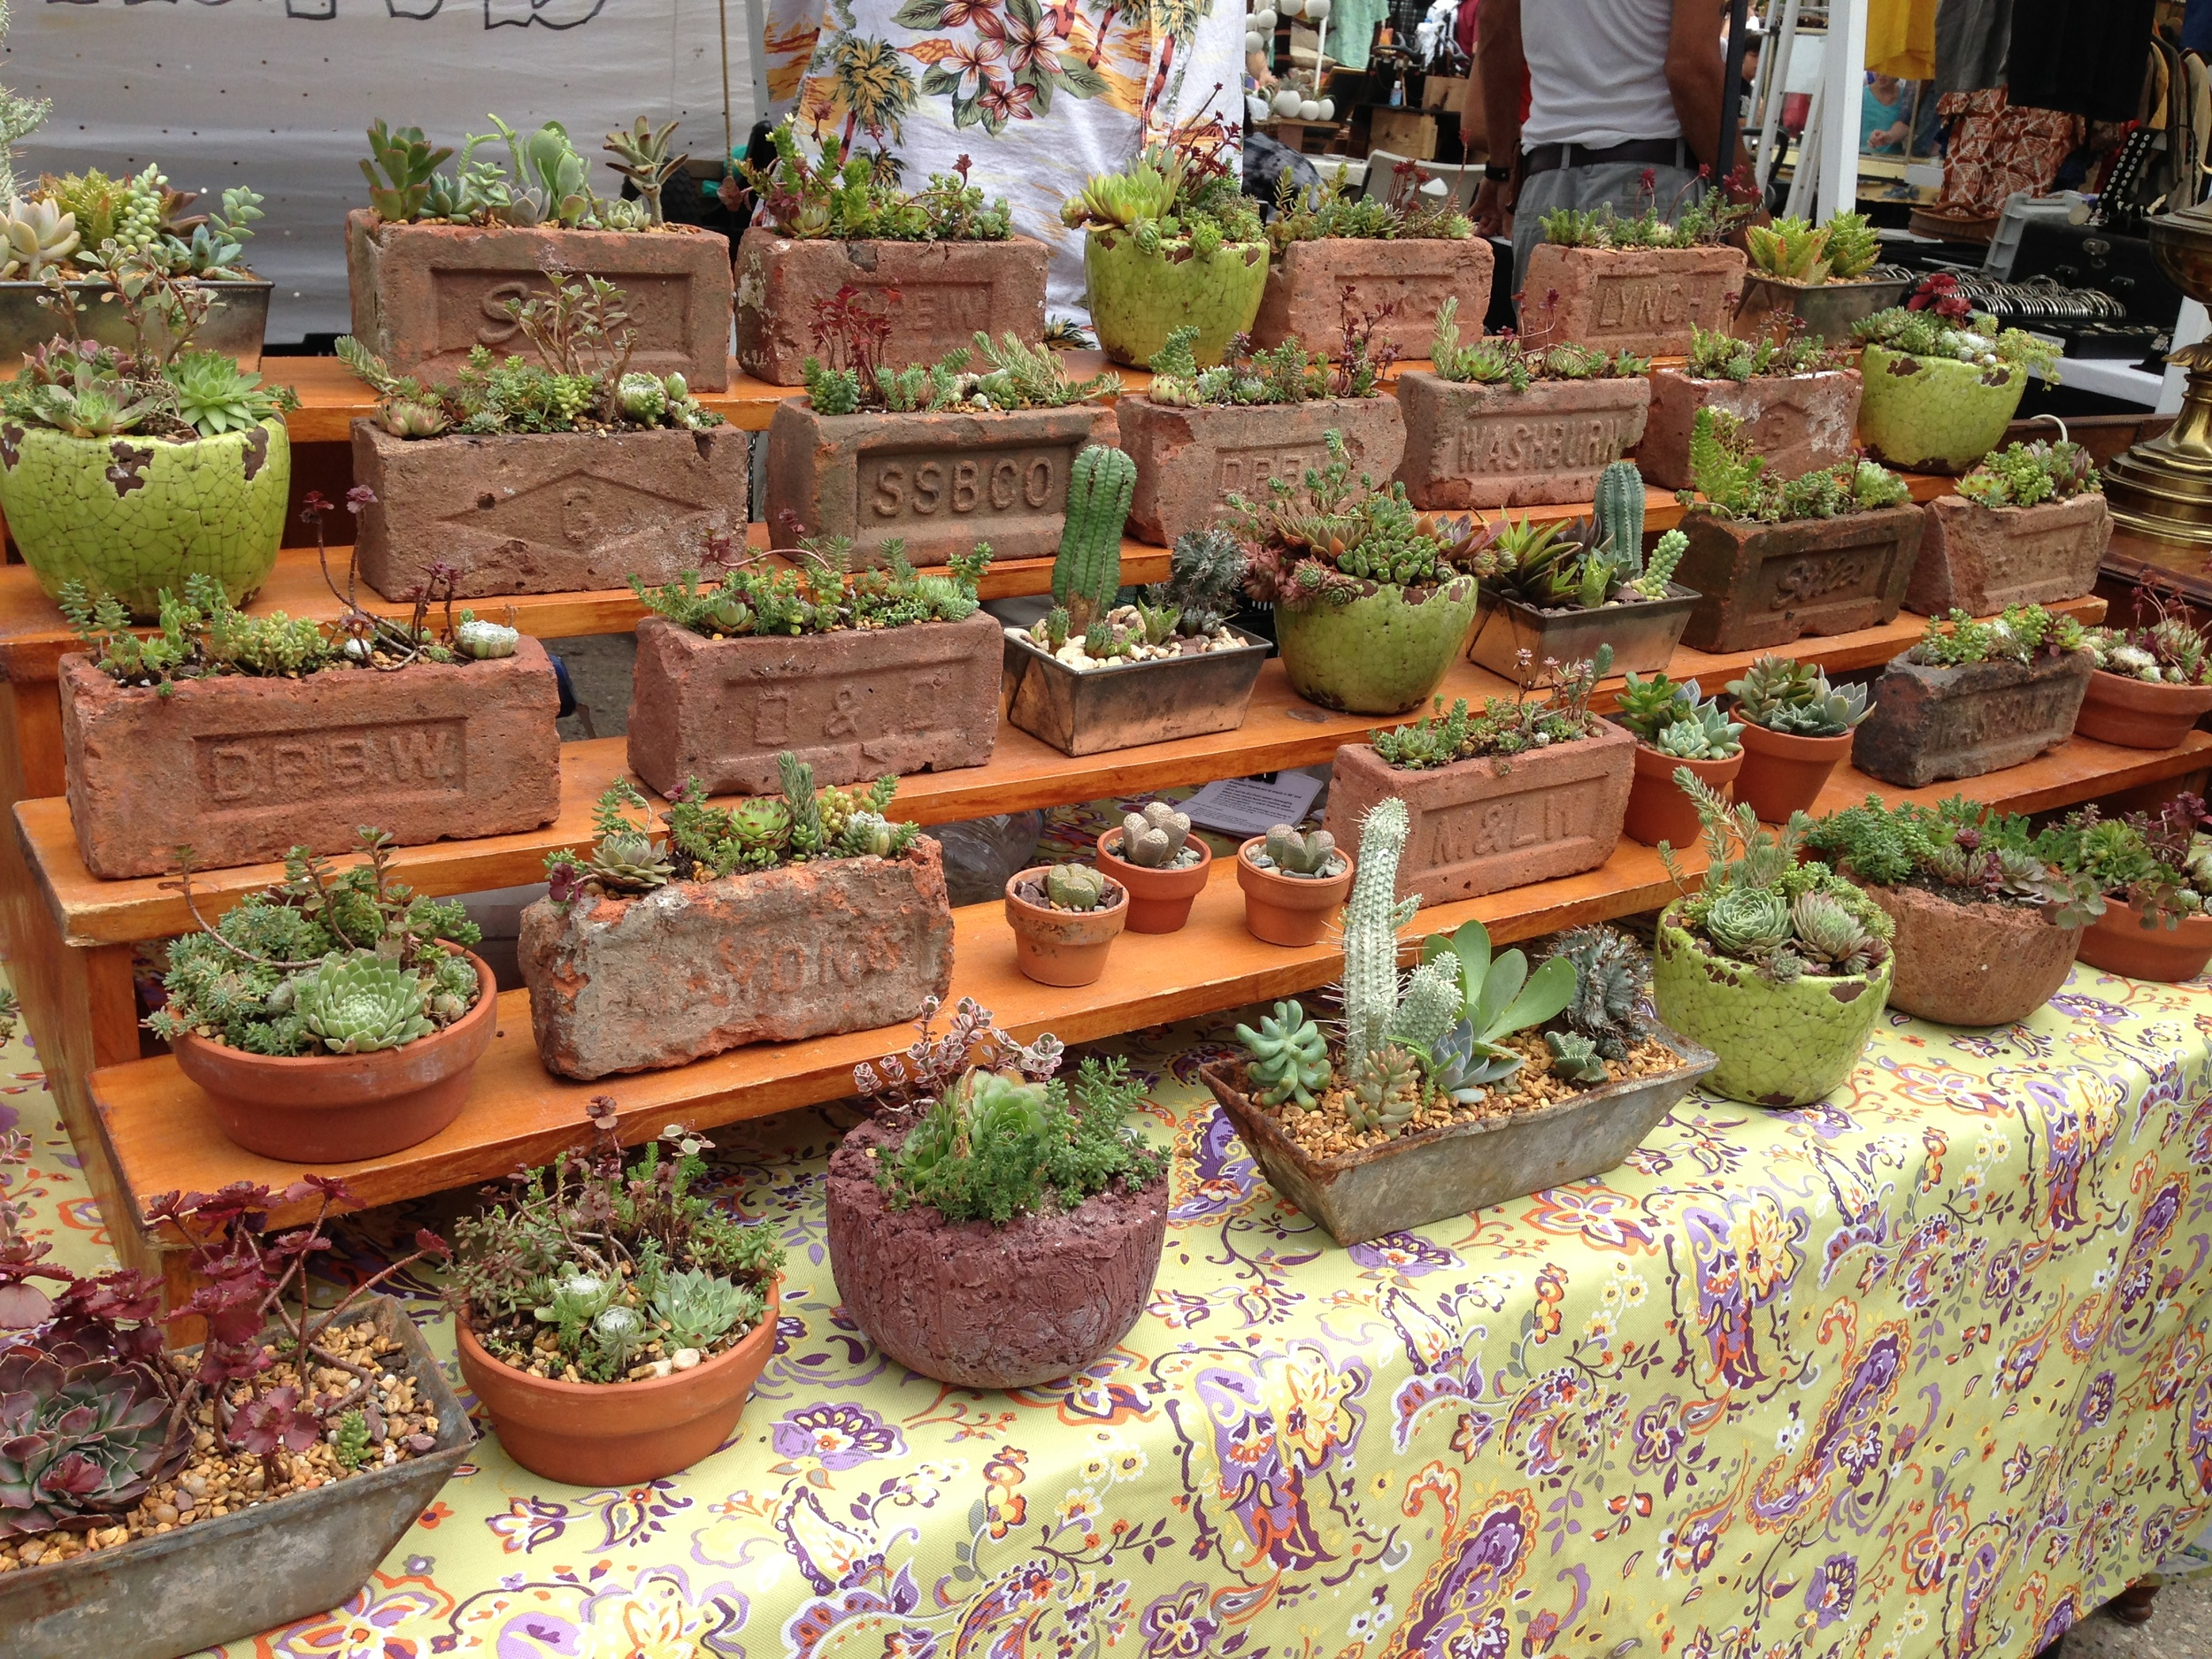 cute plants at the Flea